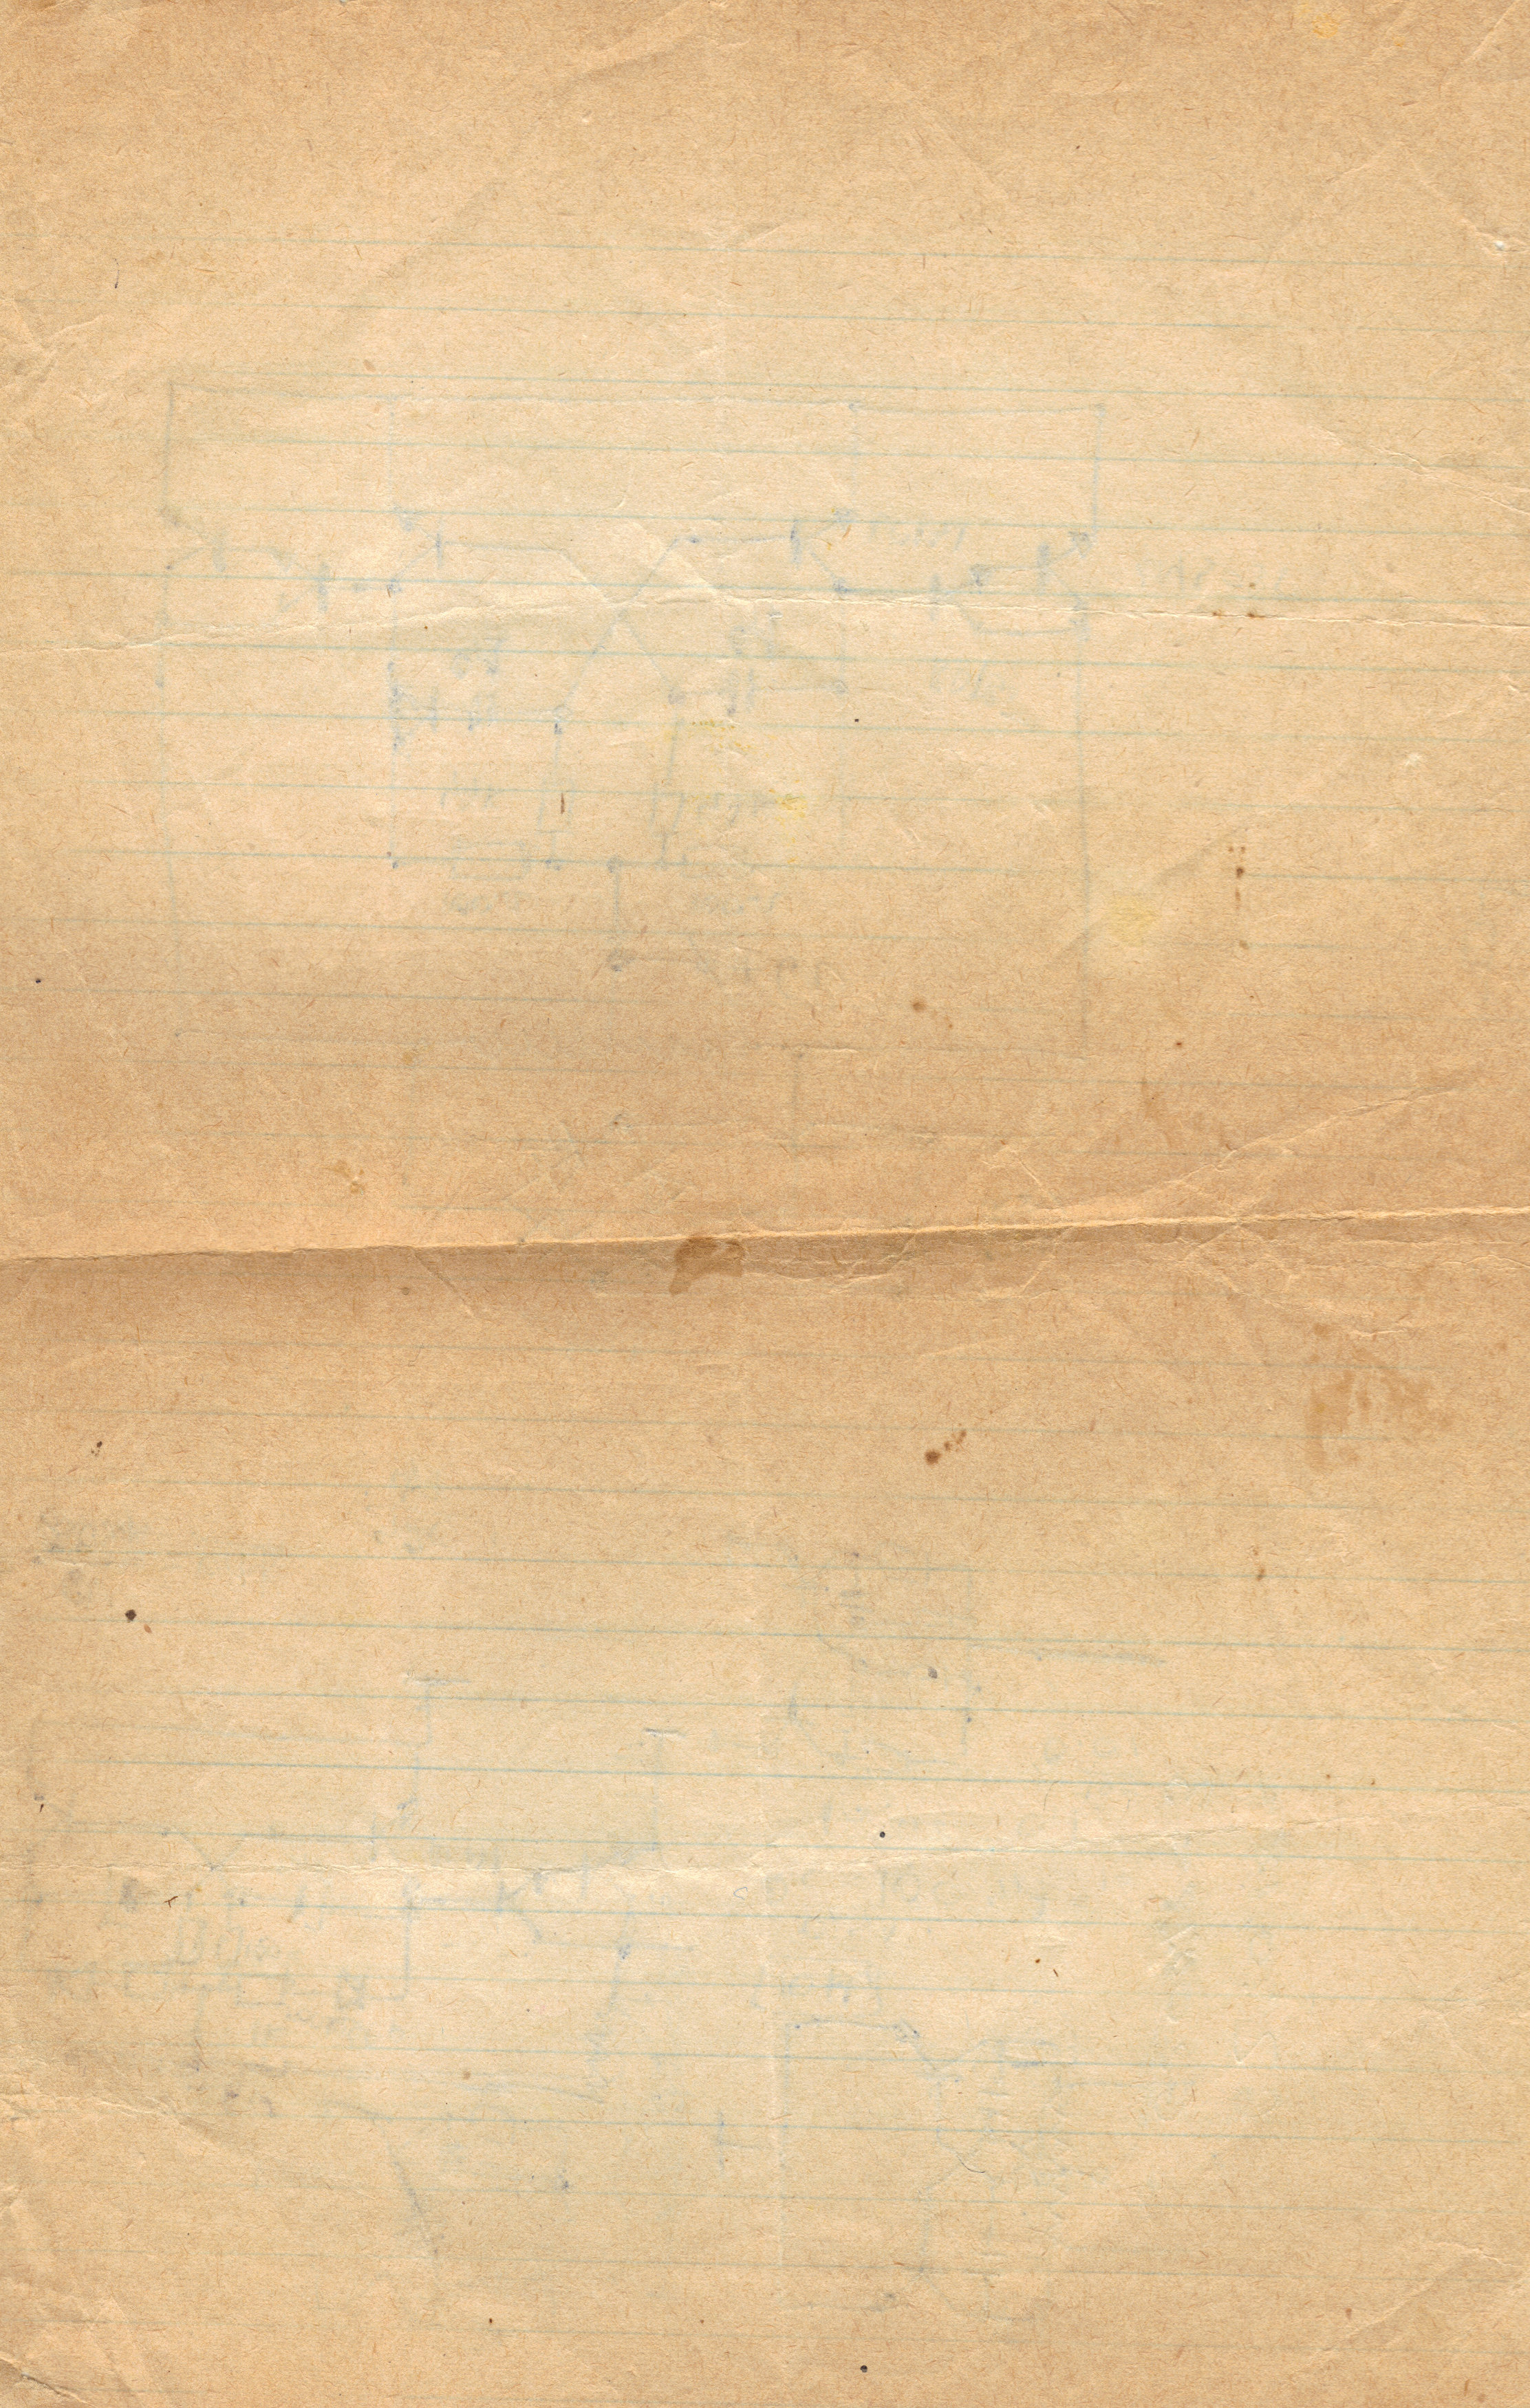 Simple Old Paper Textures Jpg Onlygfx Com